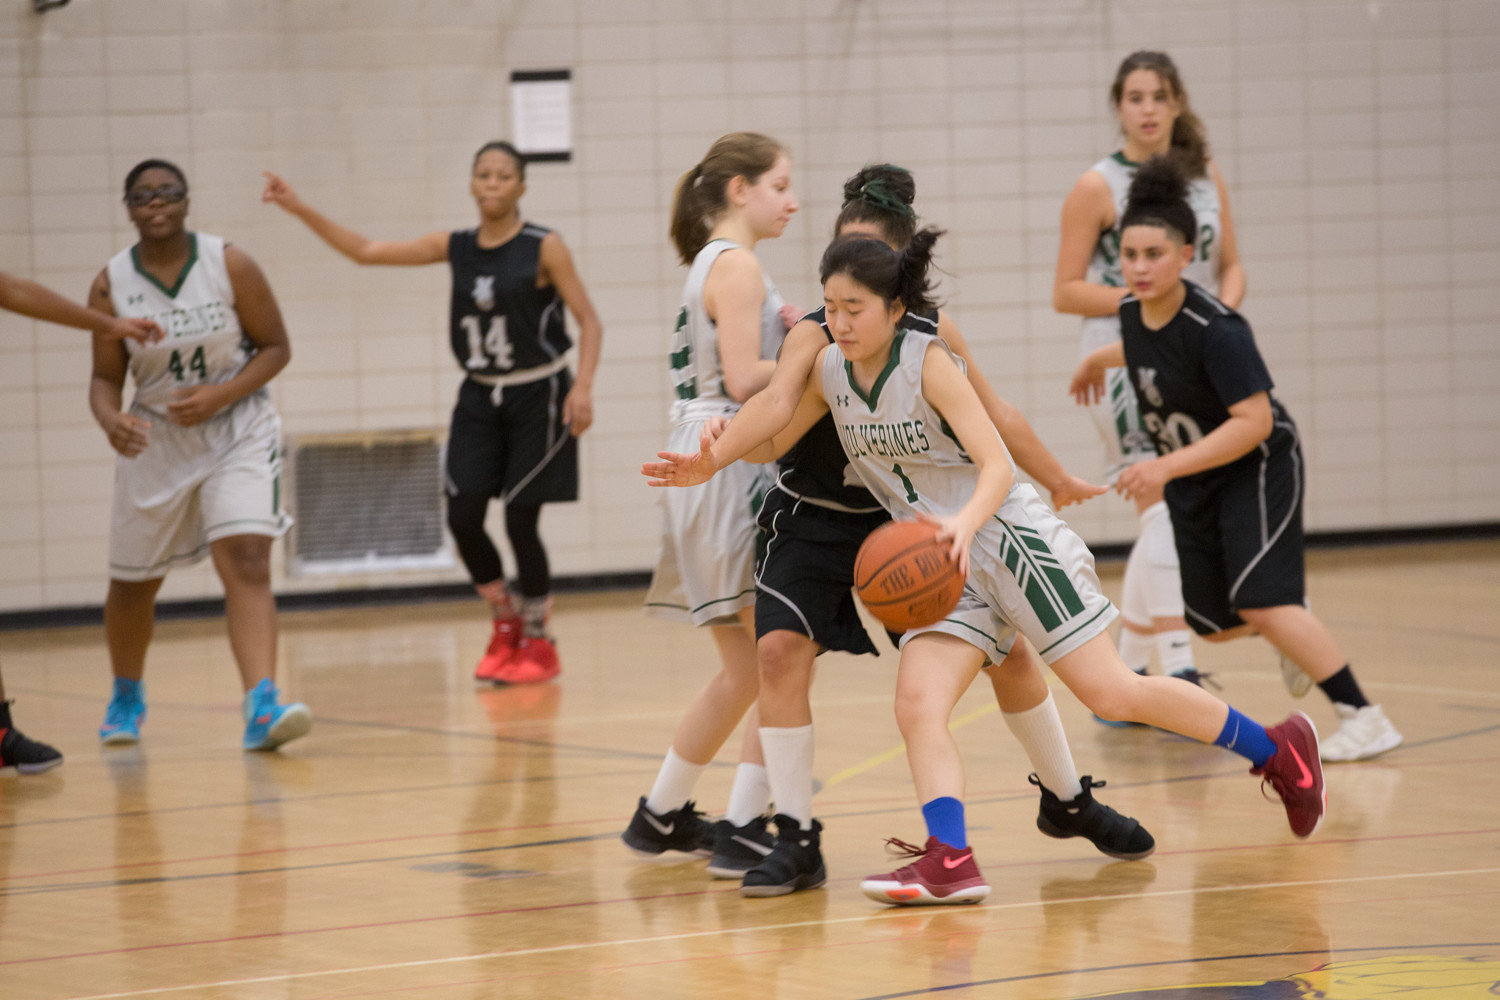 Bronx Science senior guard Michelle Kim watched her career come to an end in the Wolverines' playoff loss to Brooklyn Community in the PSAL quarterfinals.